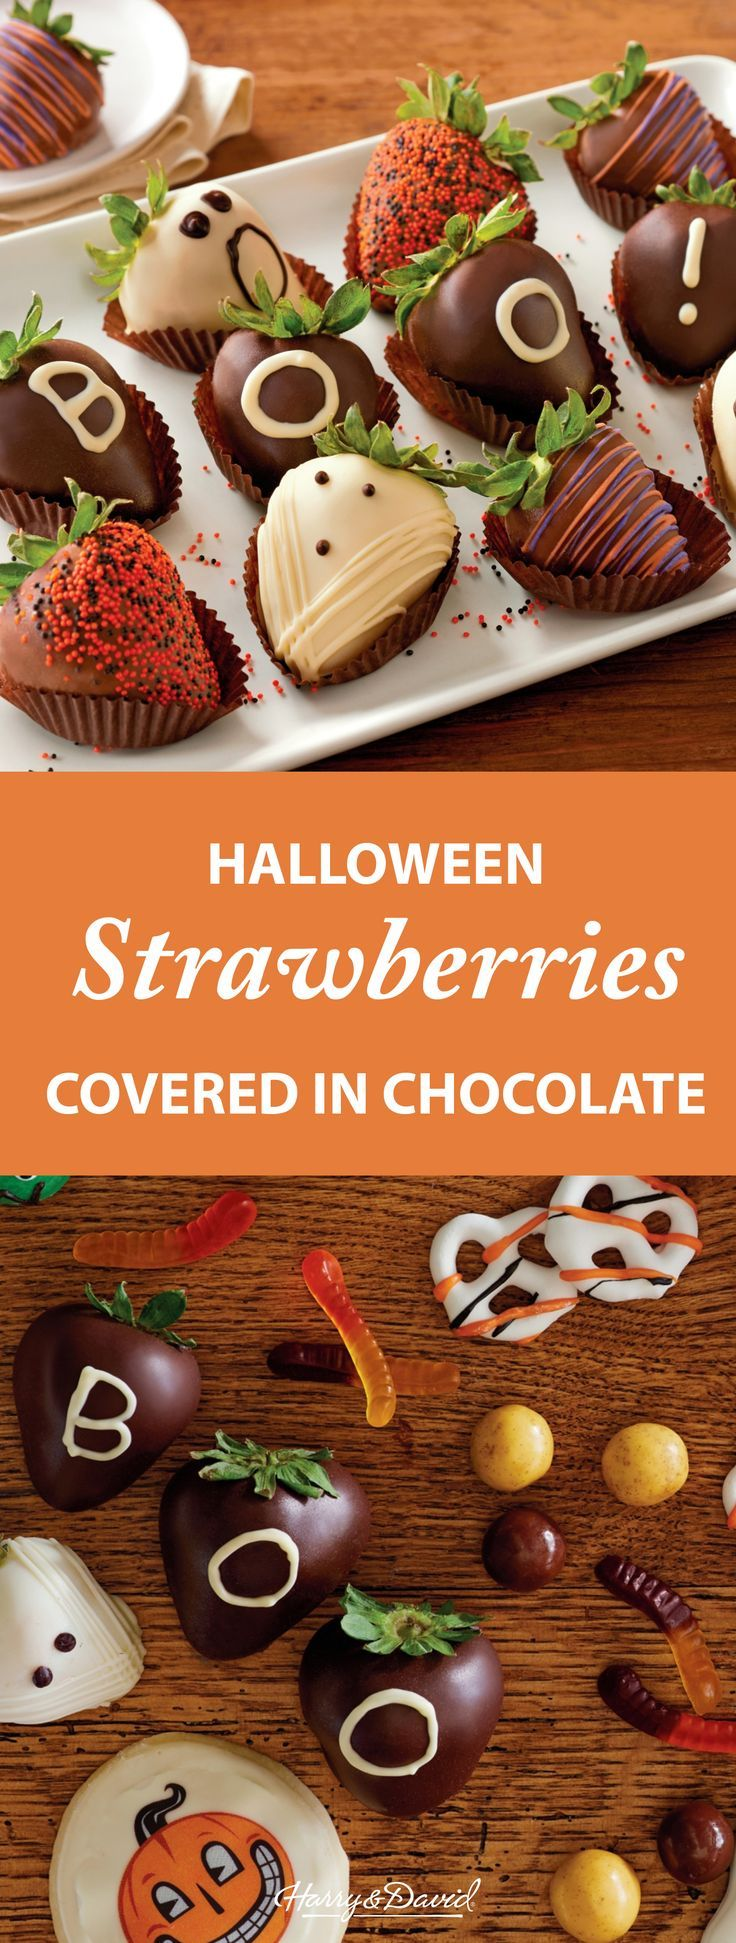 Our Halloween Hand-Dipped Chocolate-Covered Strawberries are dipped into Belgian...-#Belgian